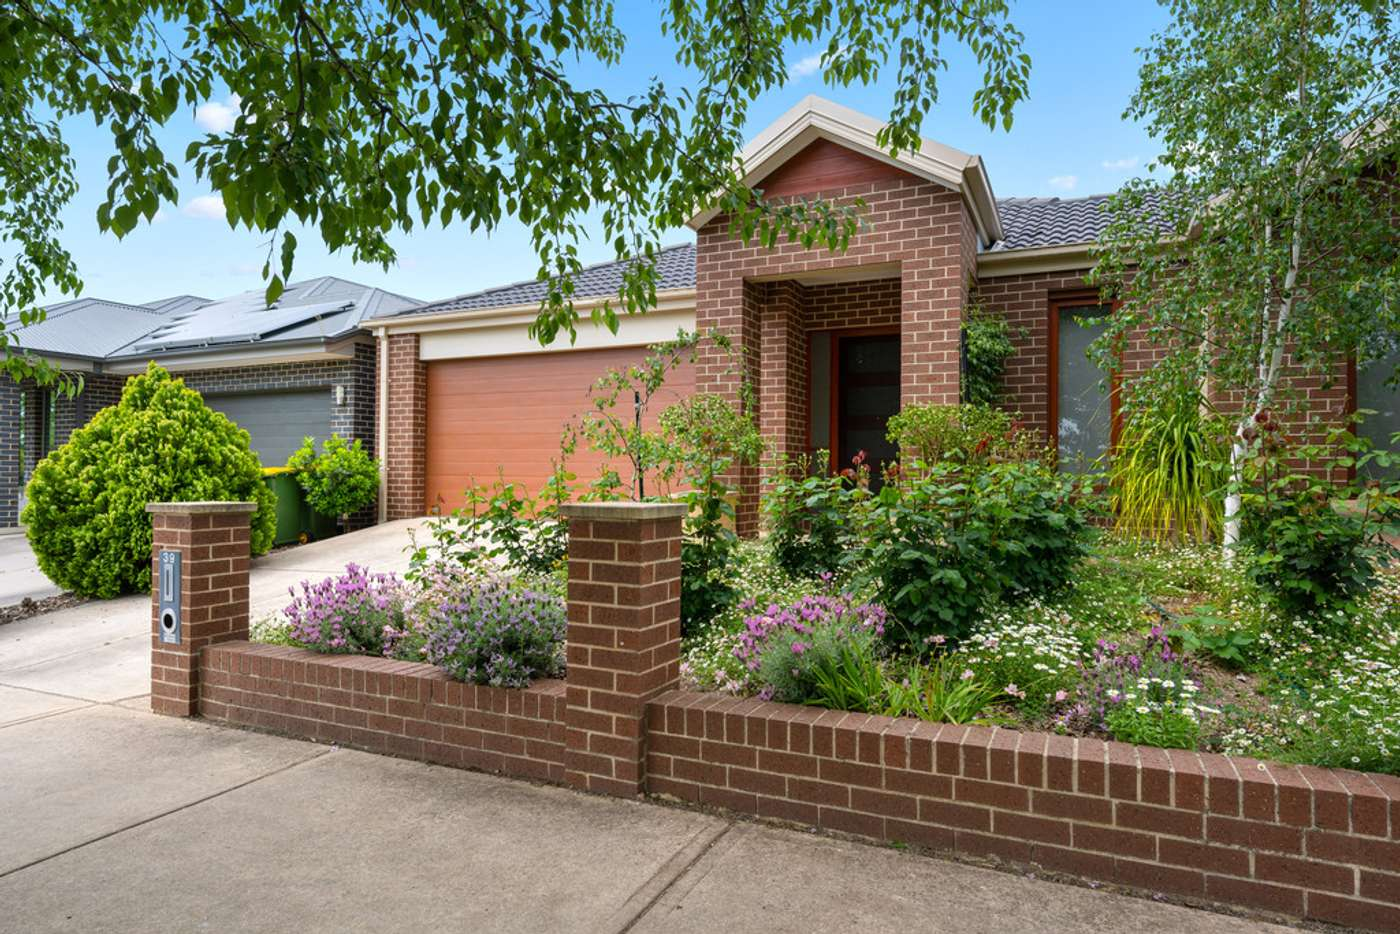 Main view of Homely house listing, 39 Victoria Cross Parade, Wodonga VIC 3690